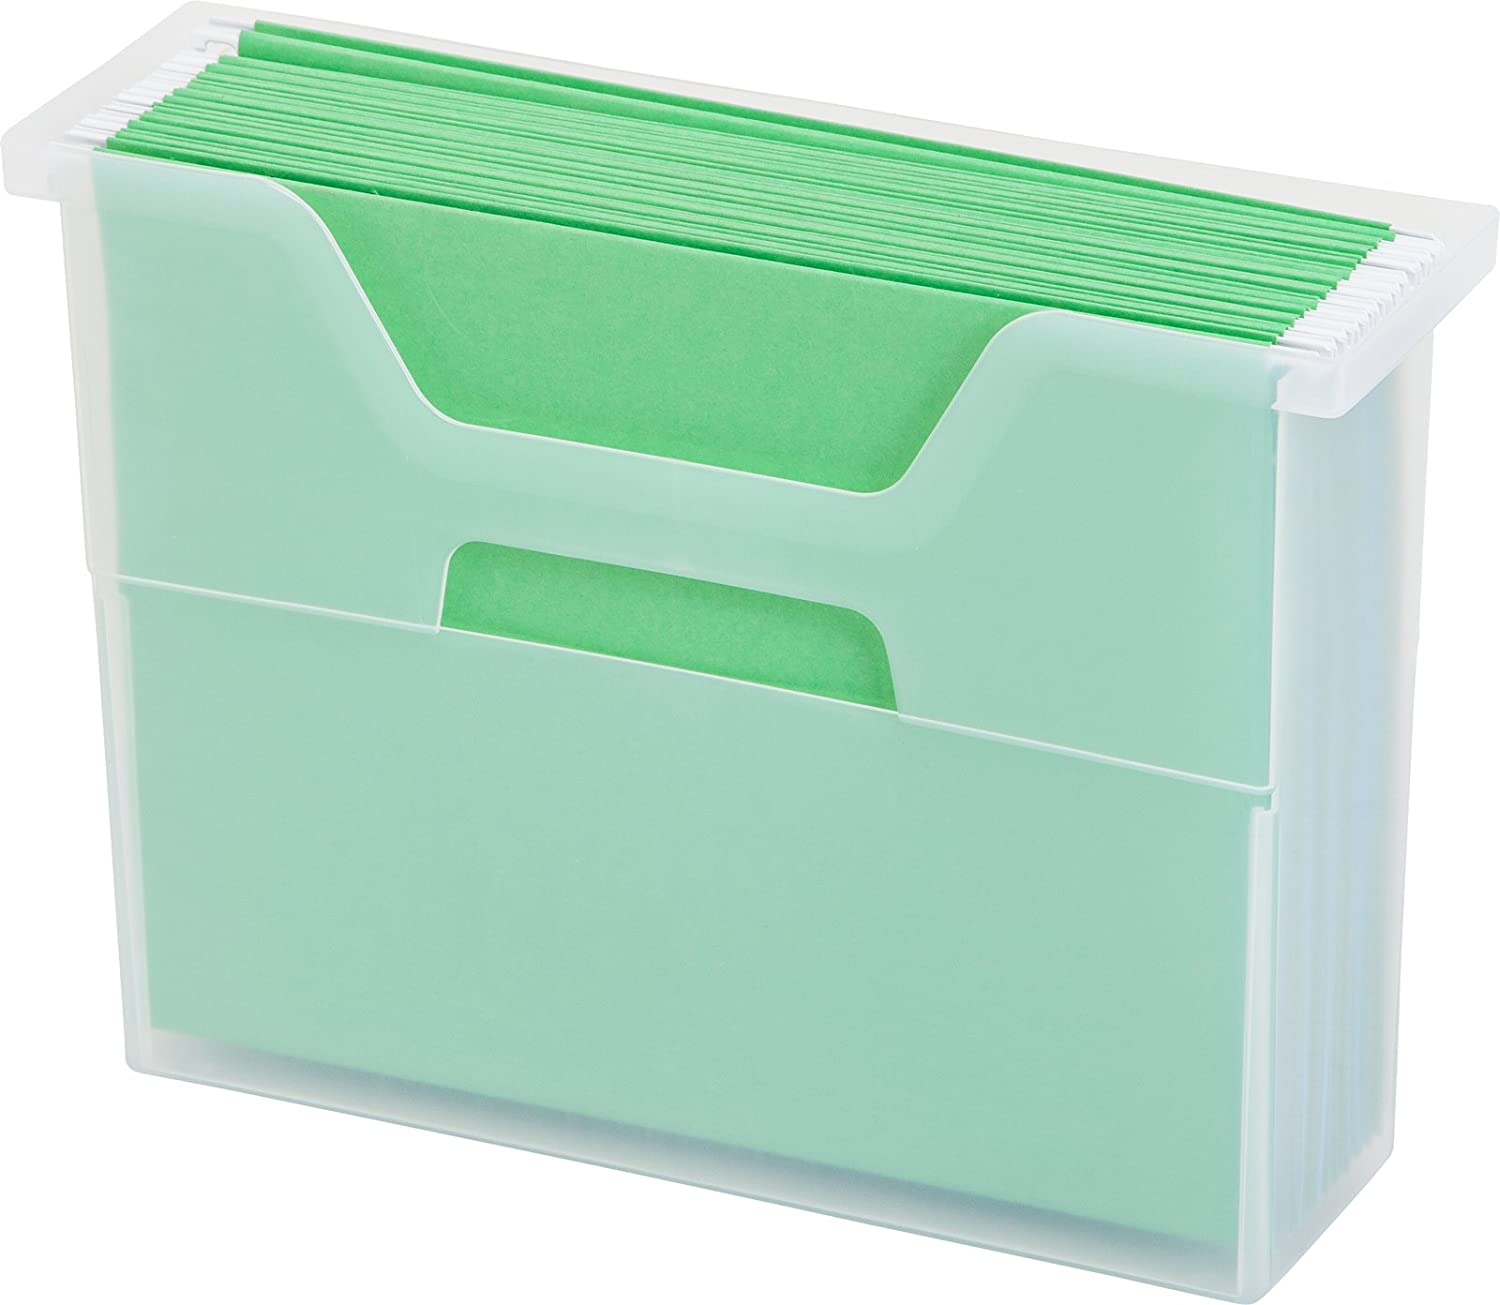 Amazon.com: IRIS Desktop File Box, Small, Clear: Home & Kitchen